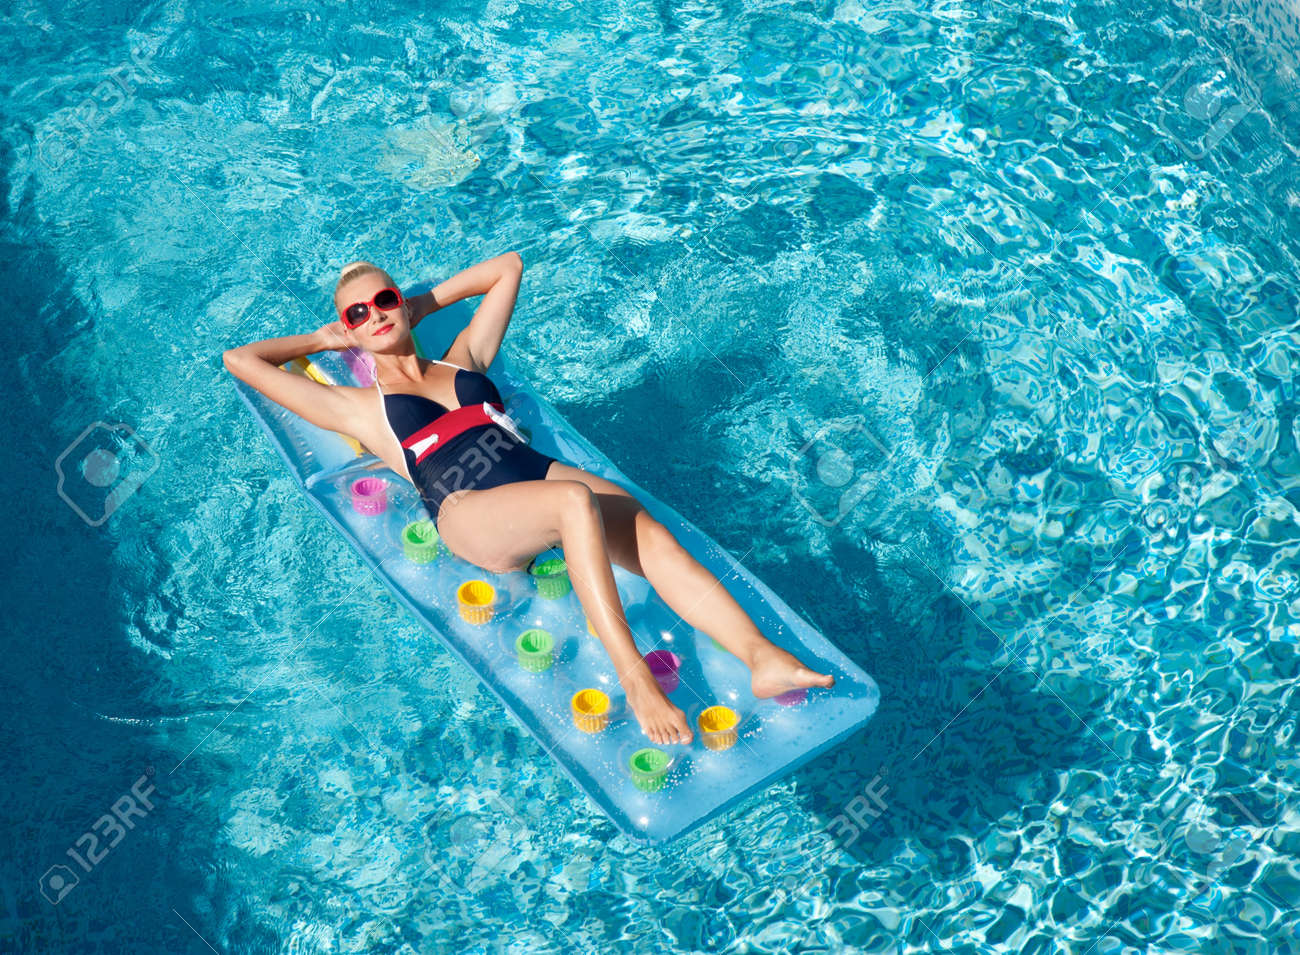 Pin up girl in the swimming pool Stock Photo - 9949792